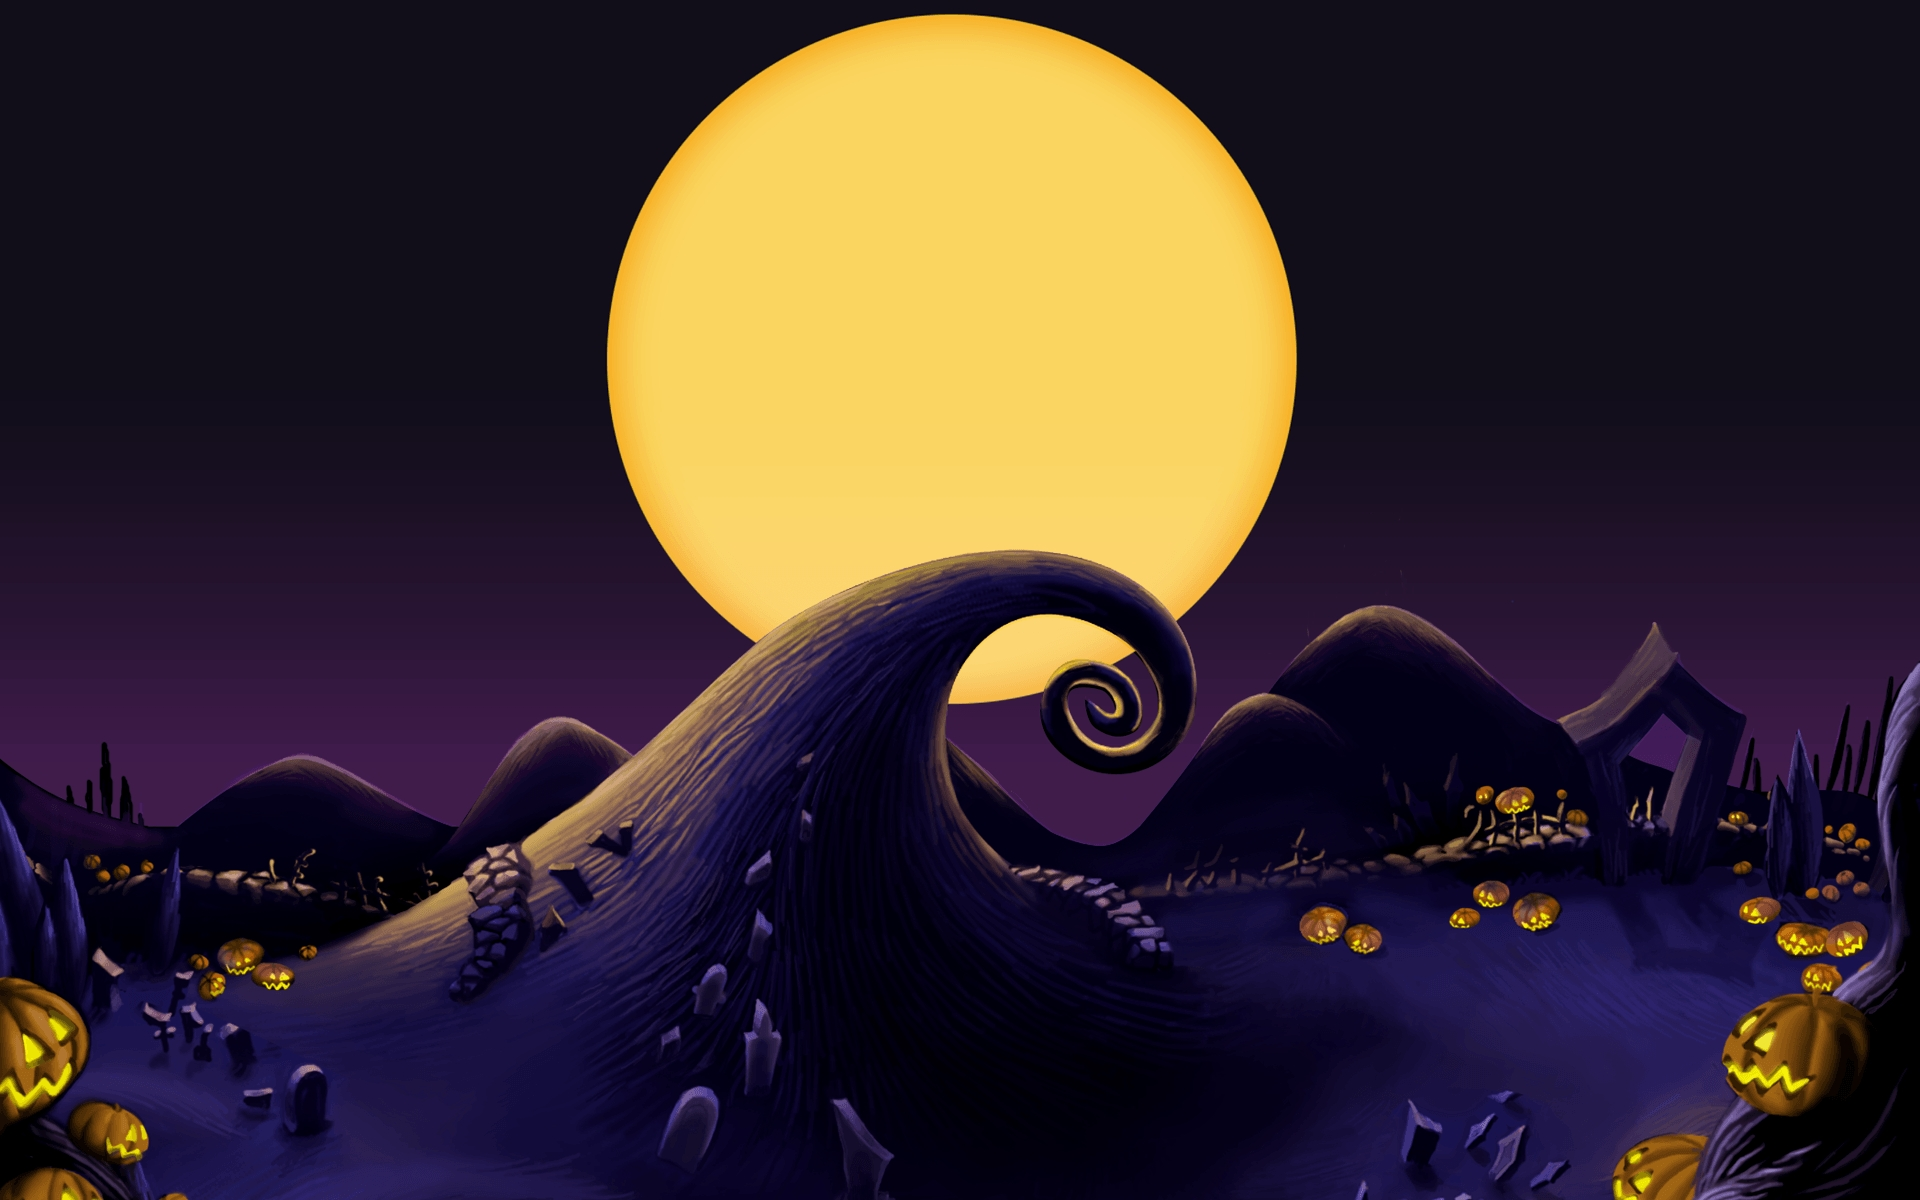 nightmare before christmas backgrounds - wallpaper cave